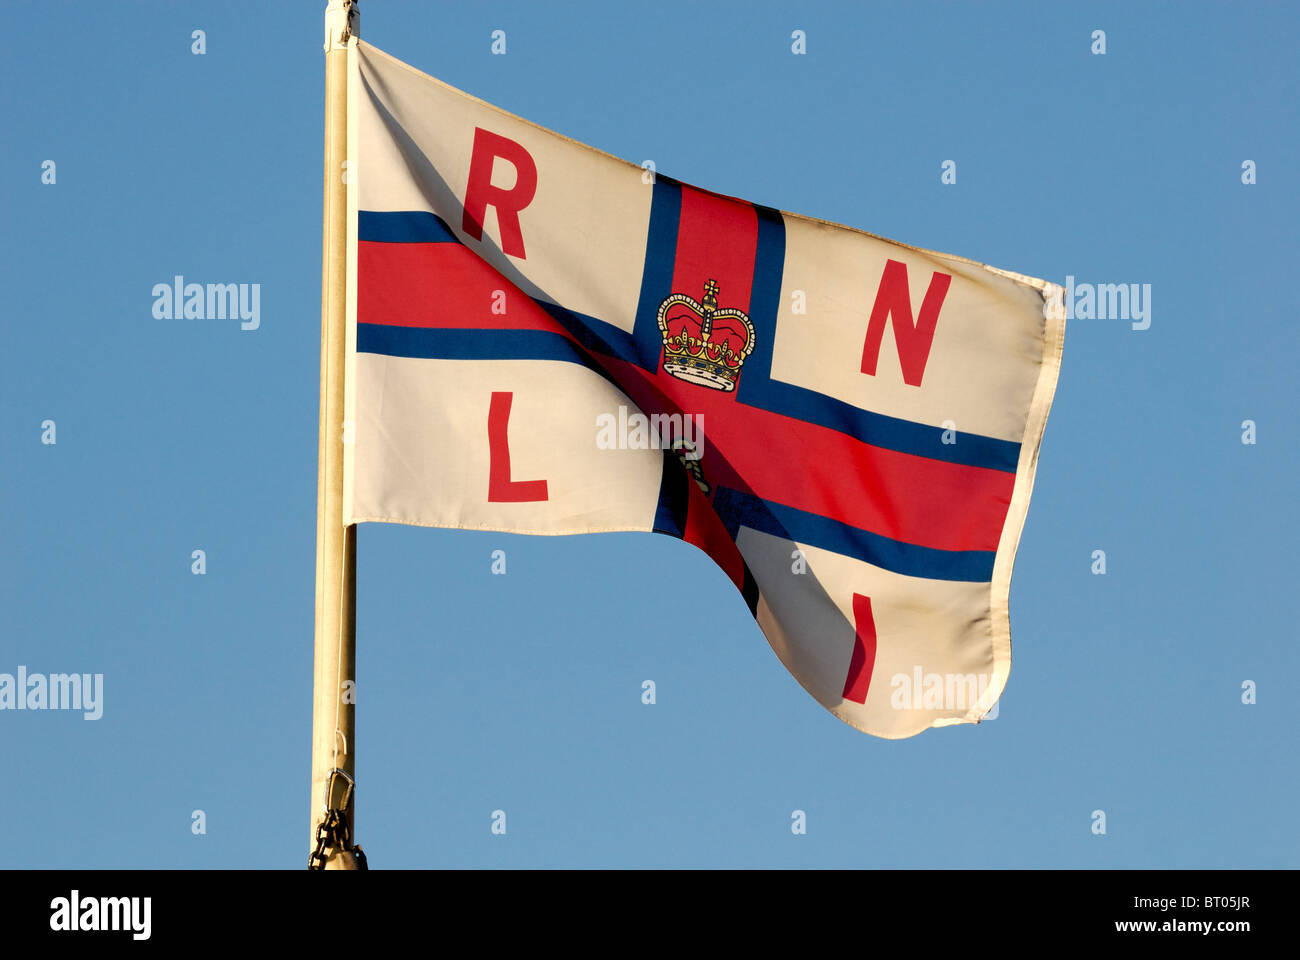 Royal National Lifeboat Institute flag - Stock Image